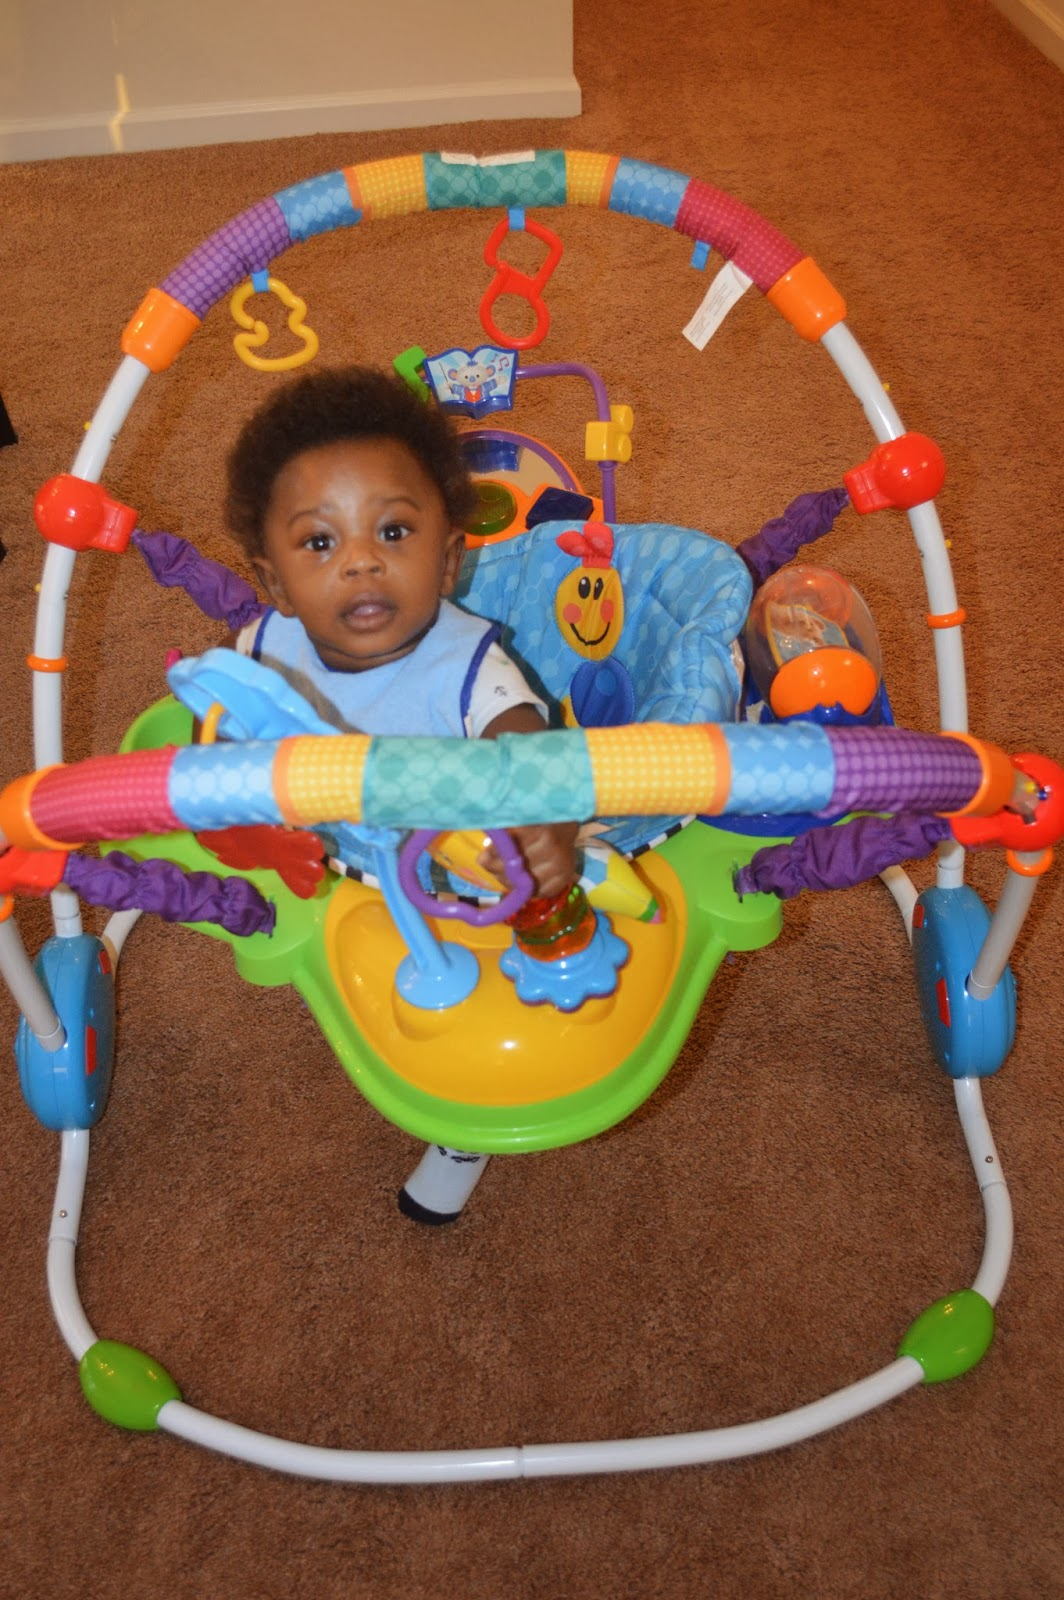 direct links to the baby einstein musical motion activity jumper